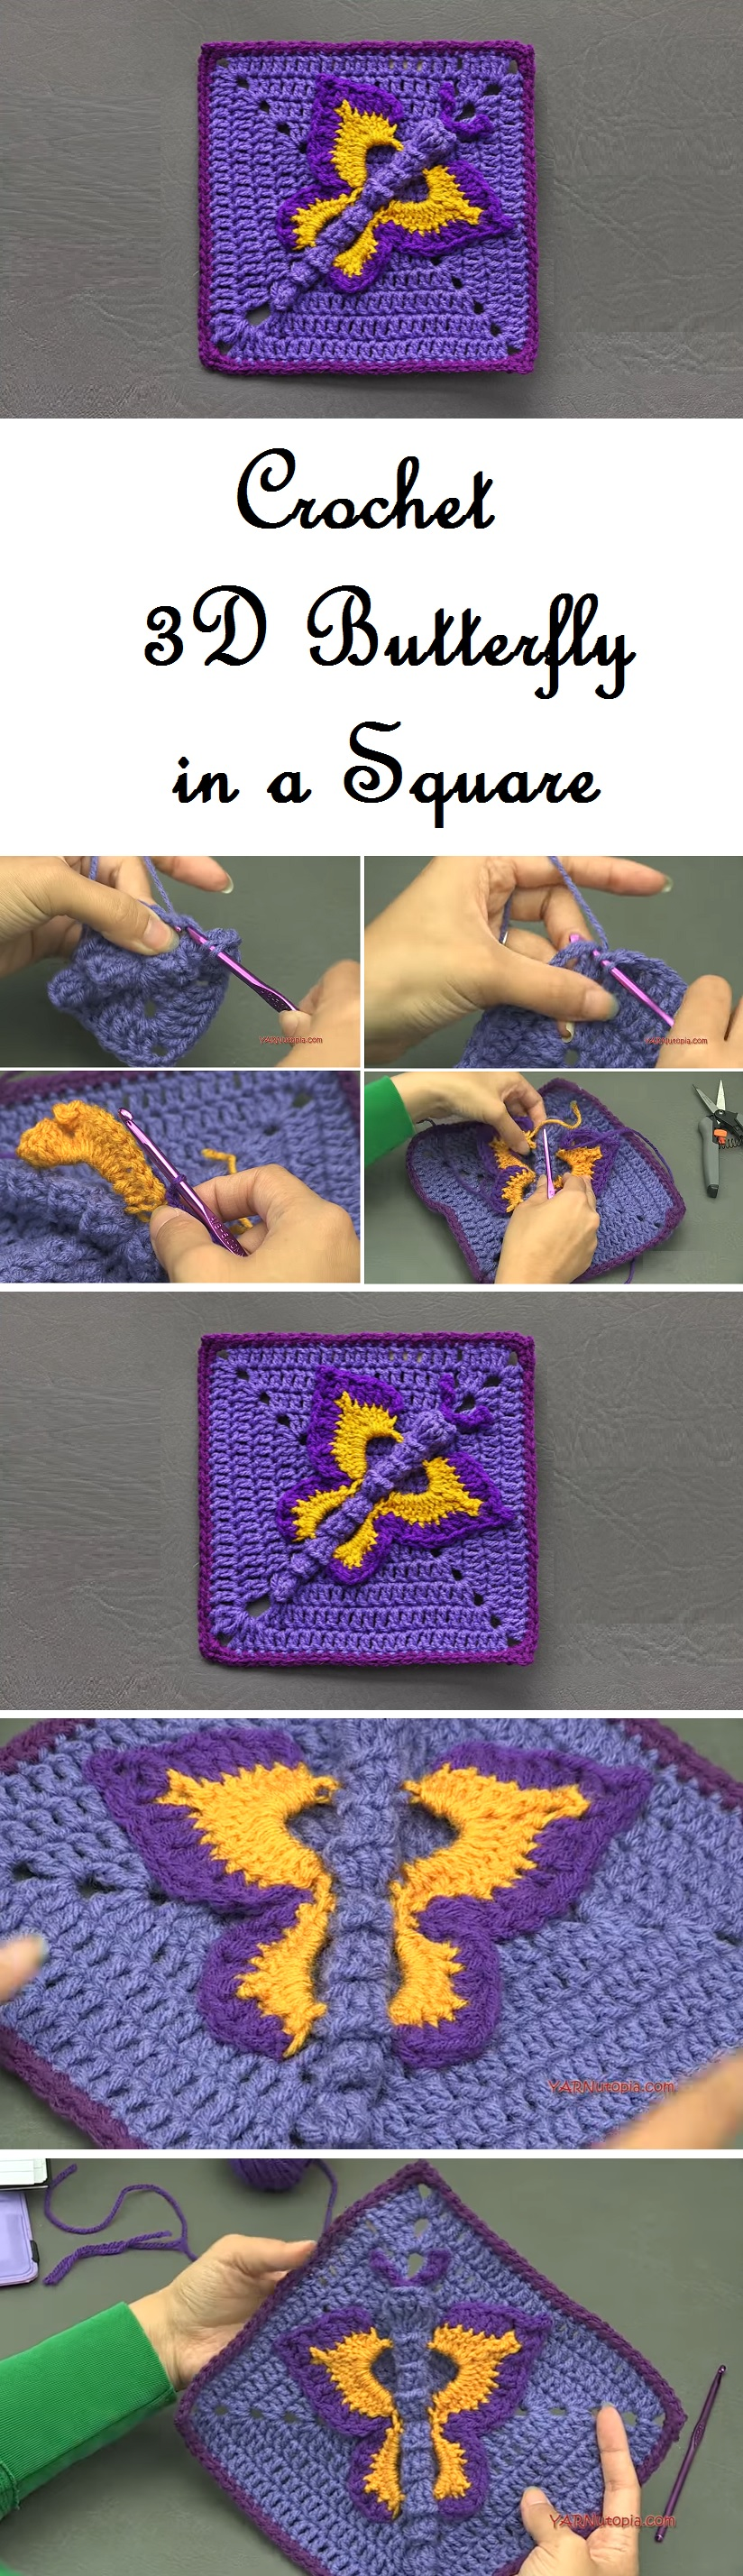 How to Croceht 3D Butterfly in a Square